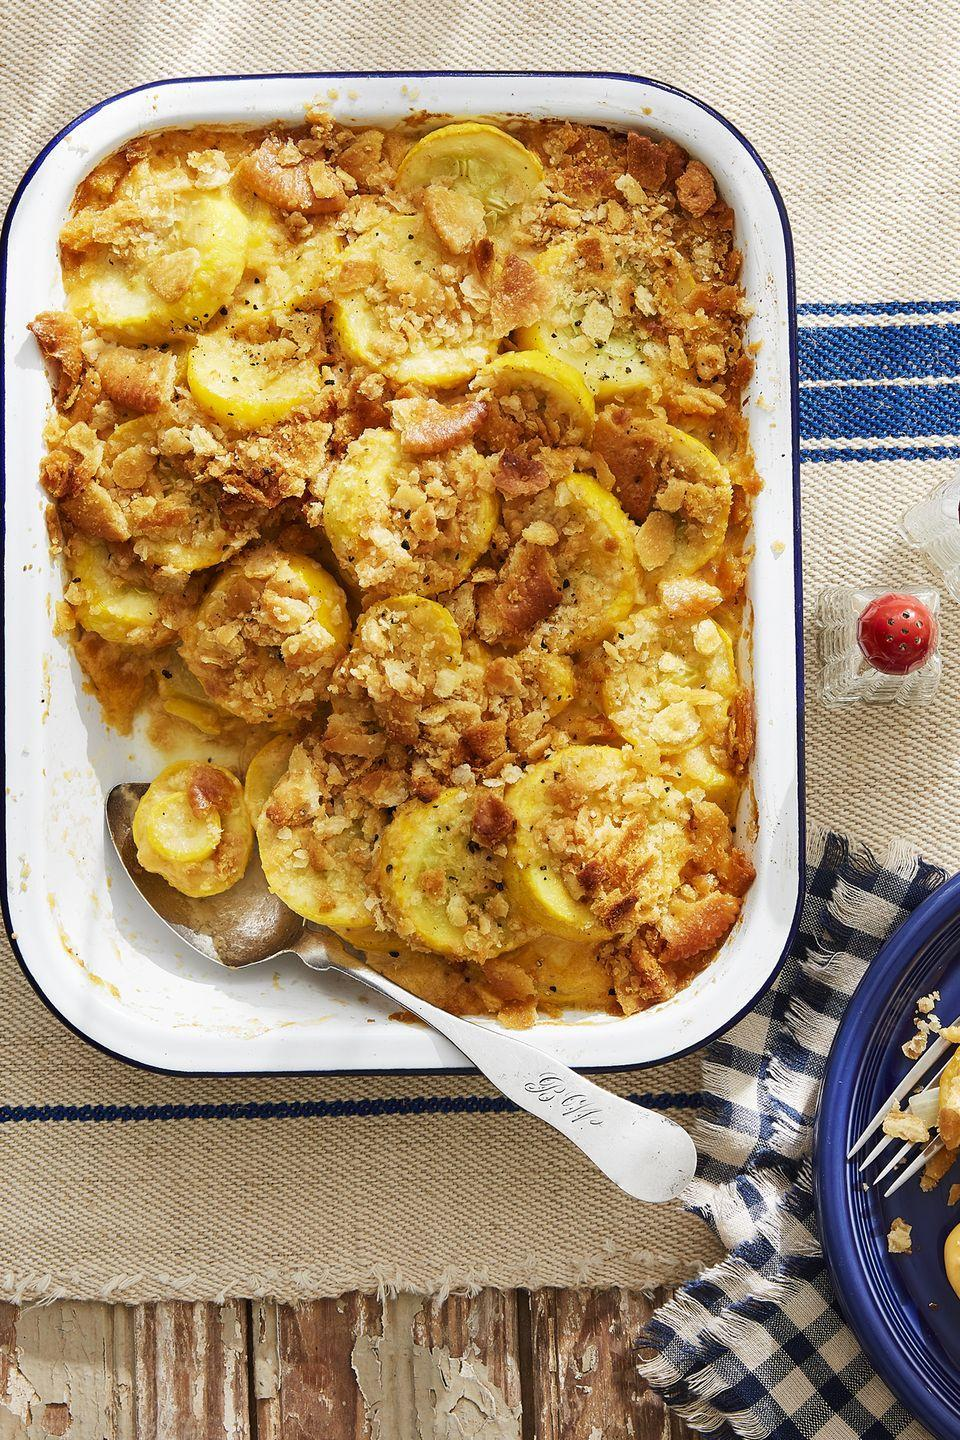 "<p>Butternut isn't the only squash worth talking about this Thanksgiving. This summer squash casserole is just as hearty and delicious as its orange counterpart. </p><p><strong><a href=""https://www.countryliving.com/food-drinks/recipes/a45275/squash-casserole-recipe/"" rel=""nofollow noopener"" target=""_blank"" data-ylk=""slk:Get the recipe"" class=""link rapid-noclick-resp"">Get the recipe</a>.</strong></p><p><a class=""link rapid-noclick-resp"" href=""https://www.amazon.com/Good-Cook-04489-OvenFresh-Stoneware/dp/B00YC2QGYQ?tag=syn-yahoo-20&ascsubtag=%5Bartid%7C10050.g.896%5Bsrc%7Cyahoo-us"" rel=""nofollow noopener"" target=""_blank"" data-ylk=""slk:SHOP CASSEROLE DISHES"">SHOP CASSEROLE DISHES</a><br></p>"